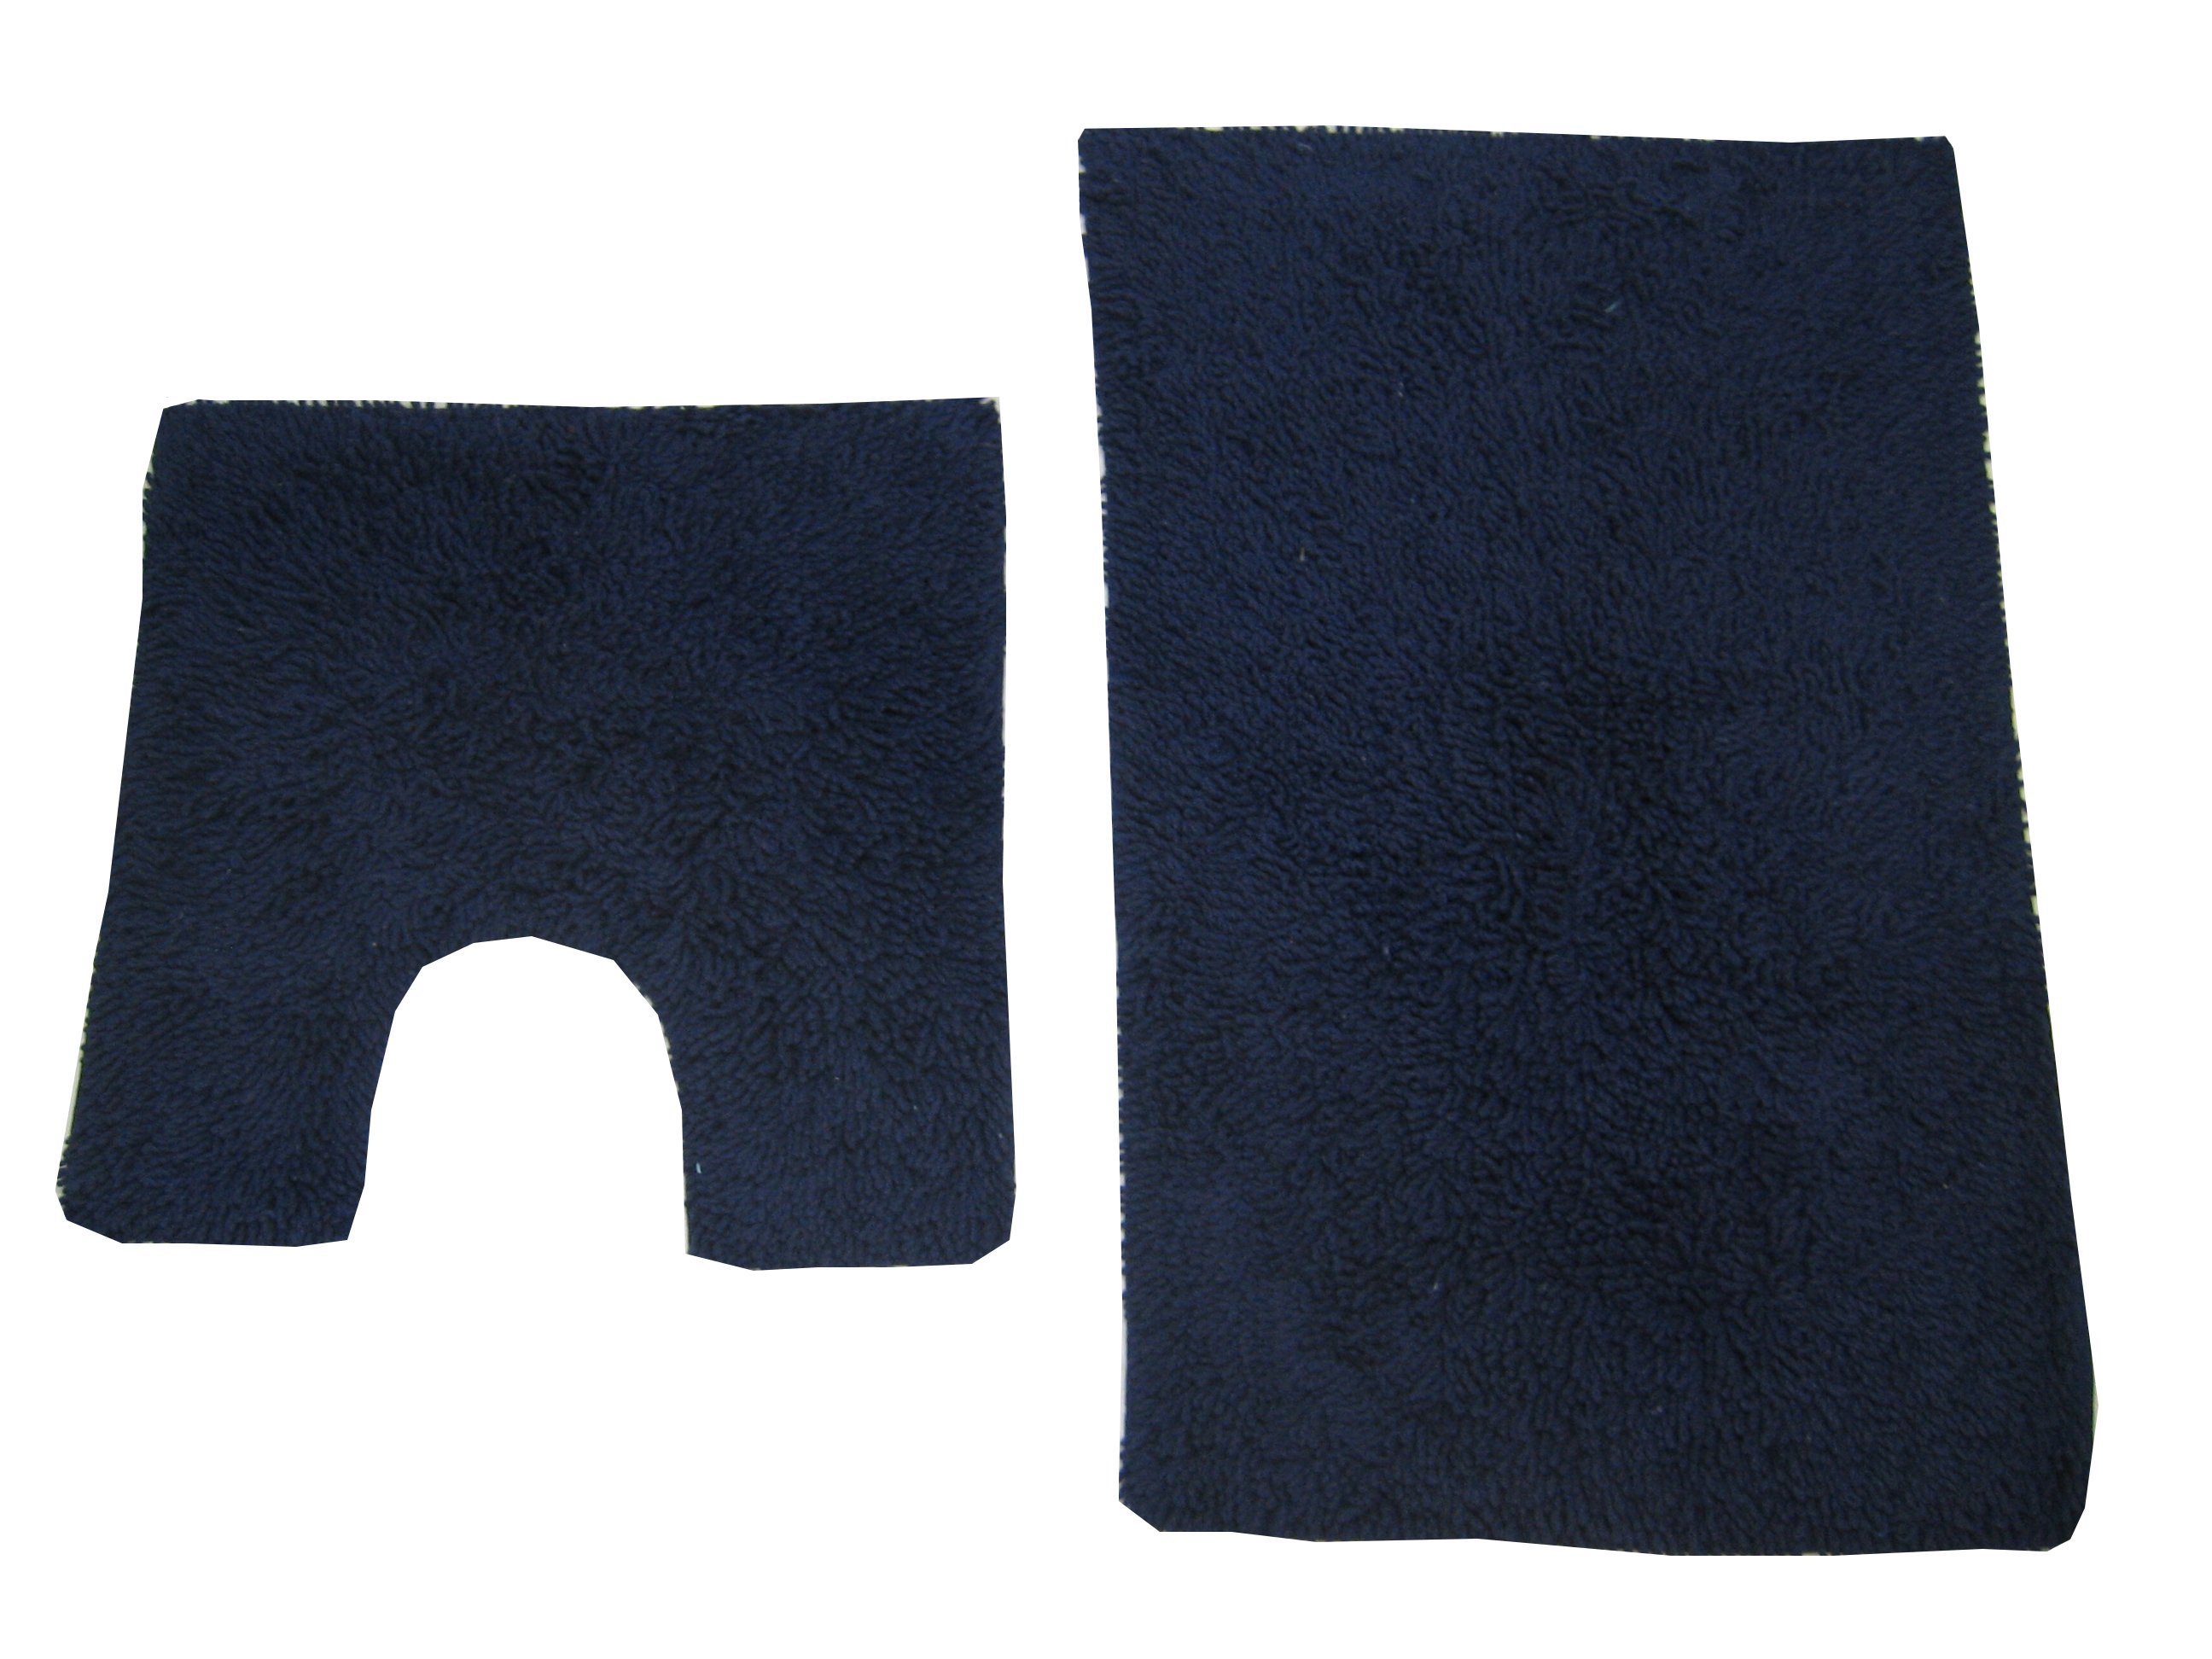 Bath Mat Pedestal Rug Set Cotton Tumble Twist Navy Blue Ebay